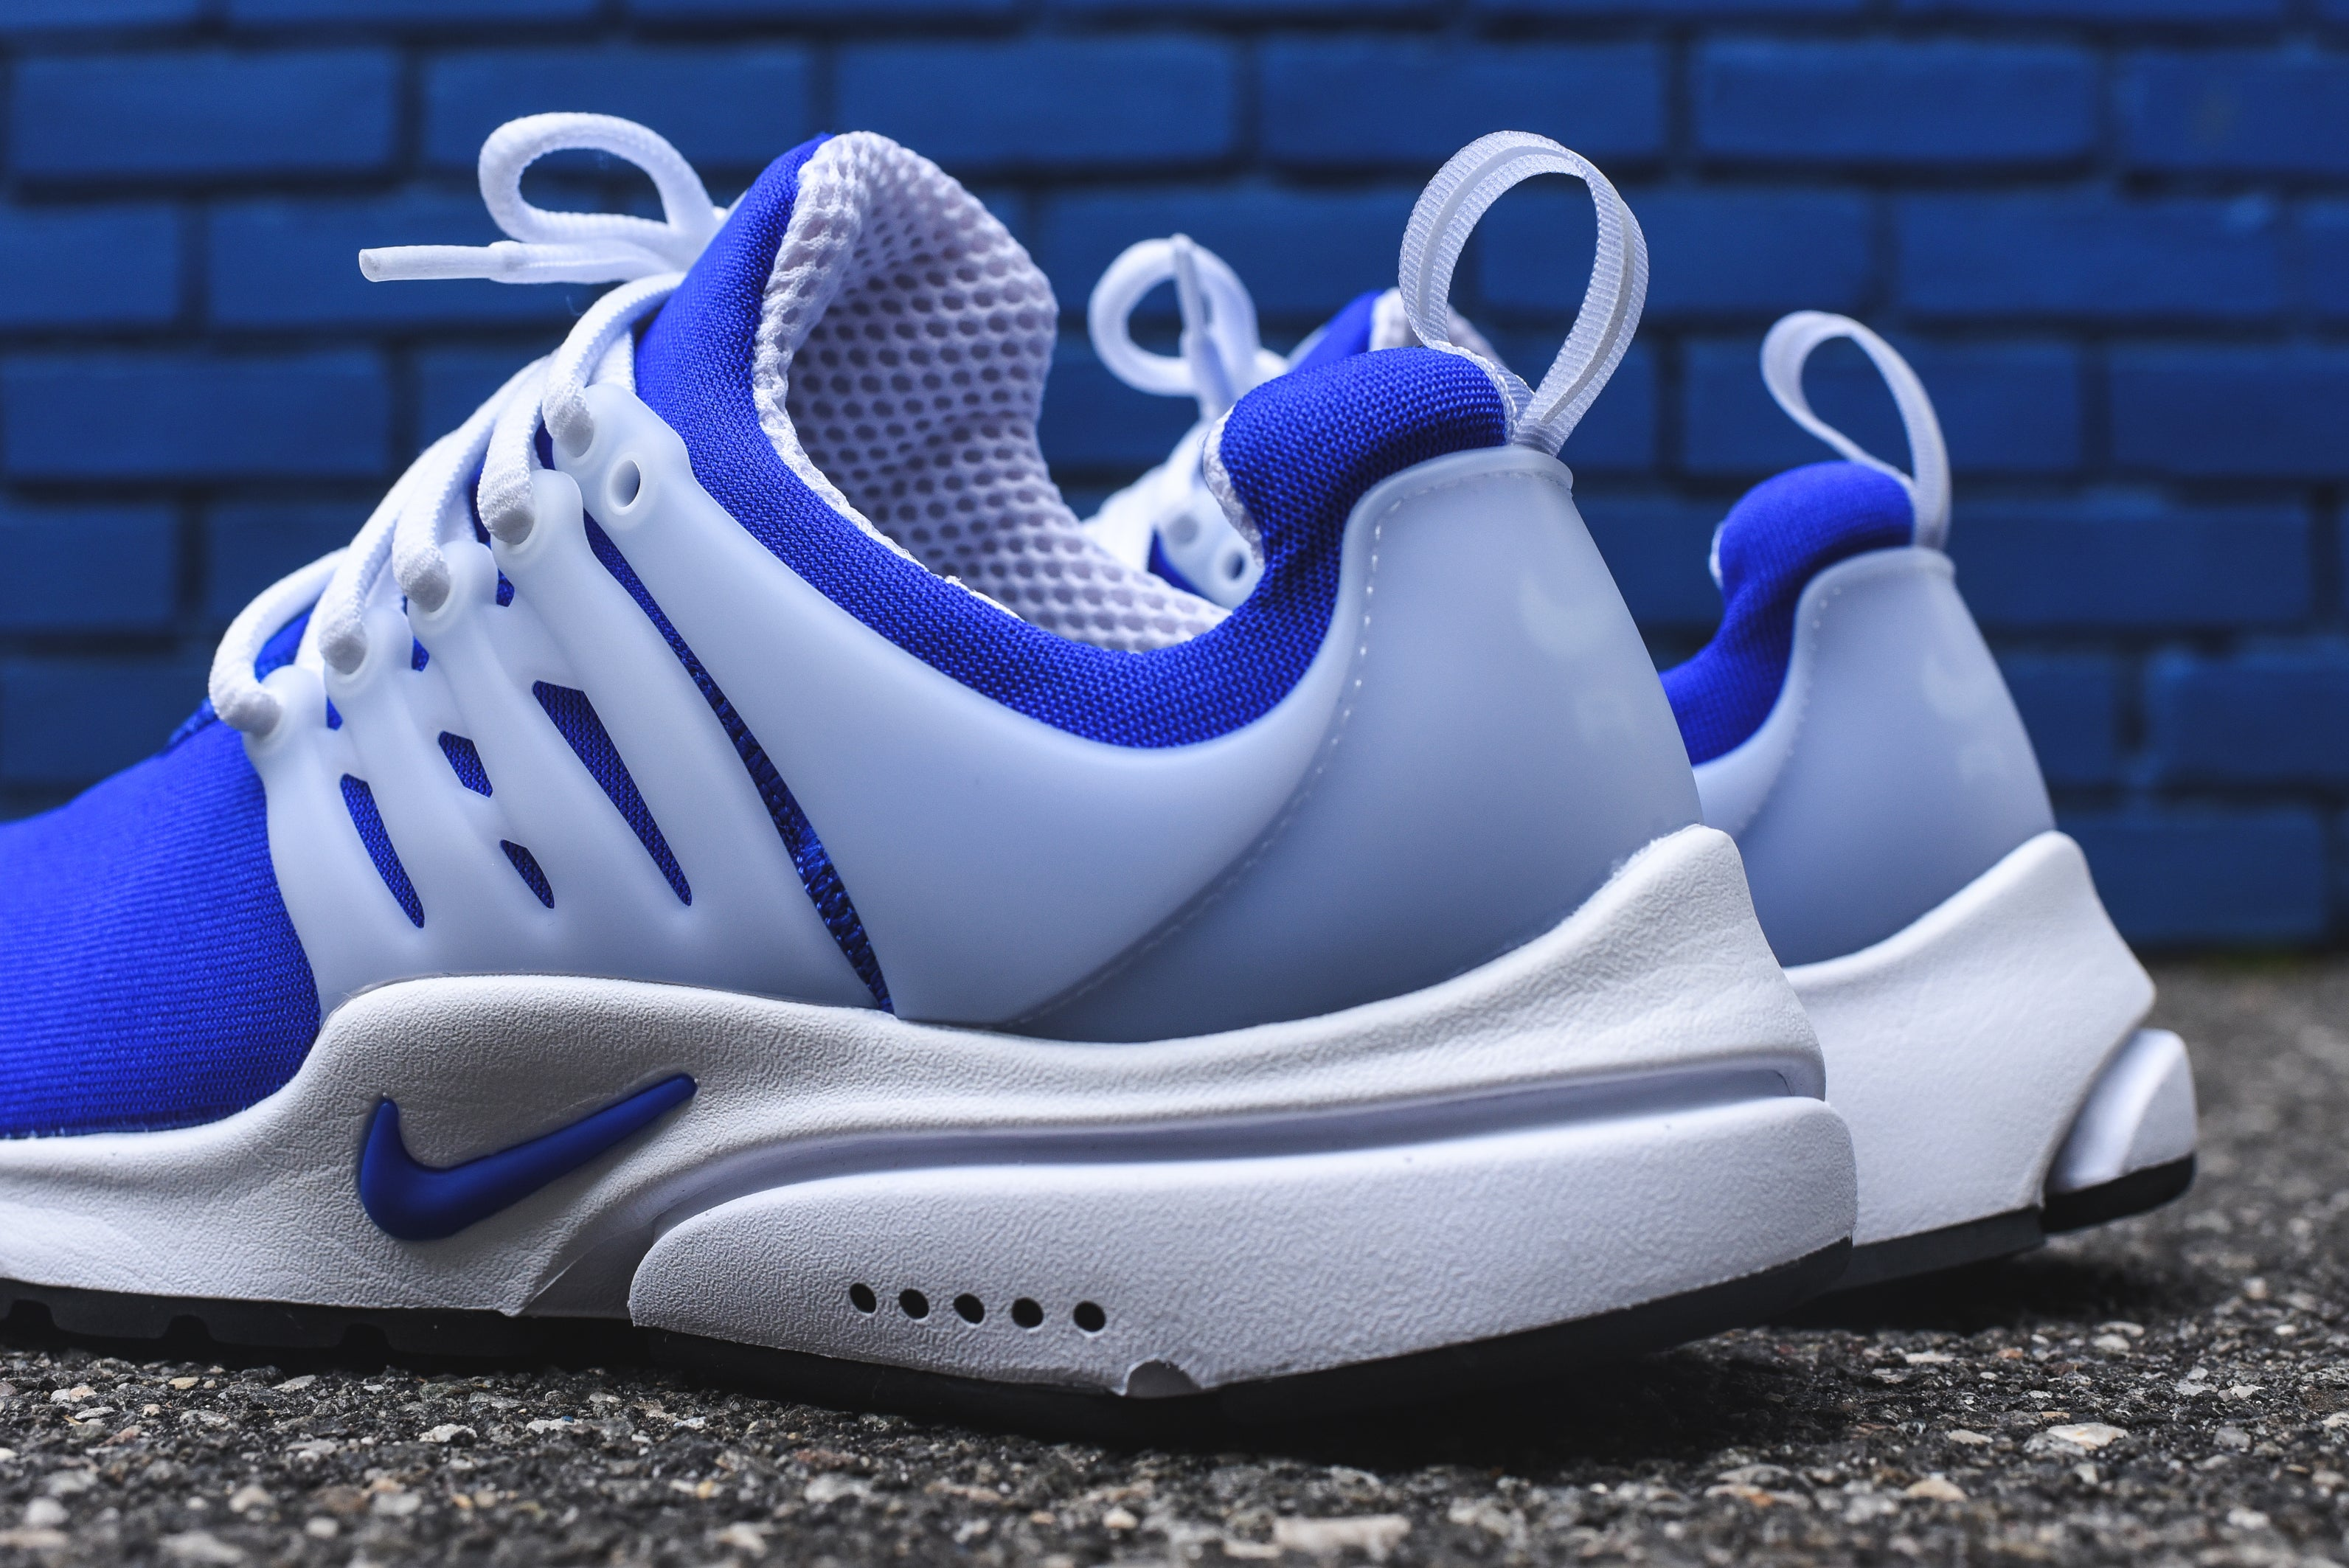 882c0e9ce1e Nike Air Presto Racer - Blue   White. August 23